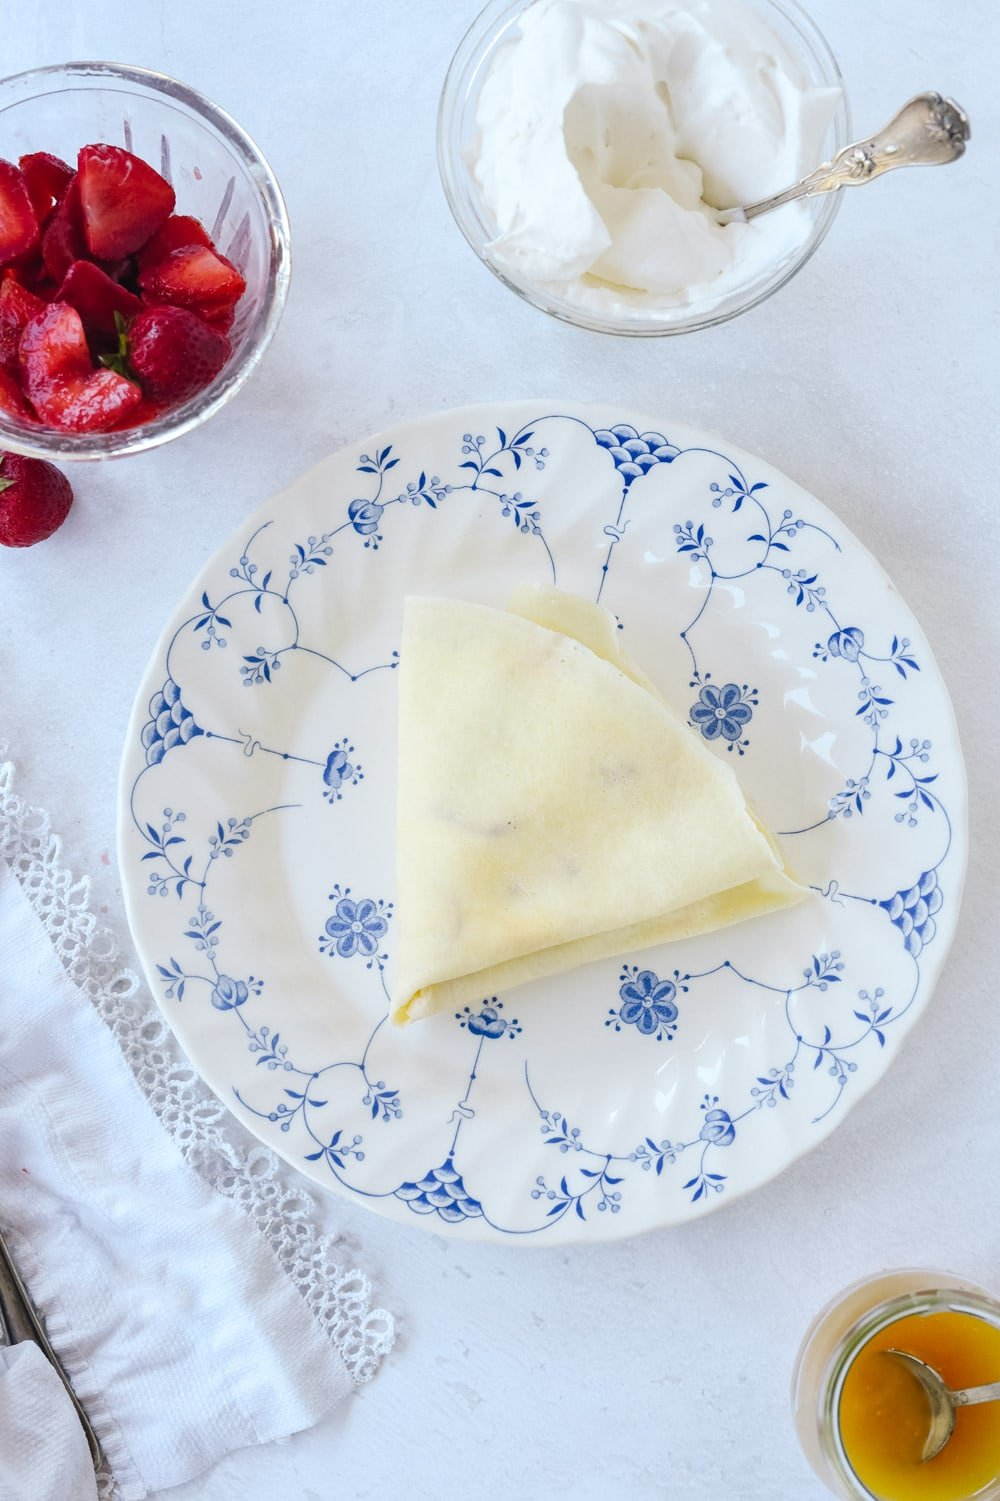 Triangular folded crepe